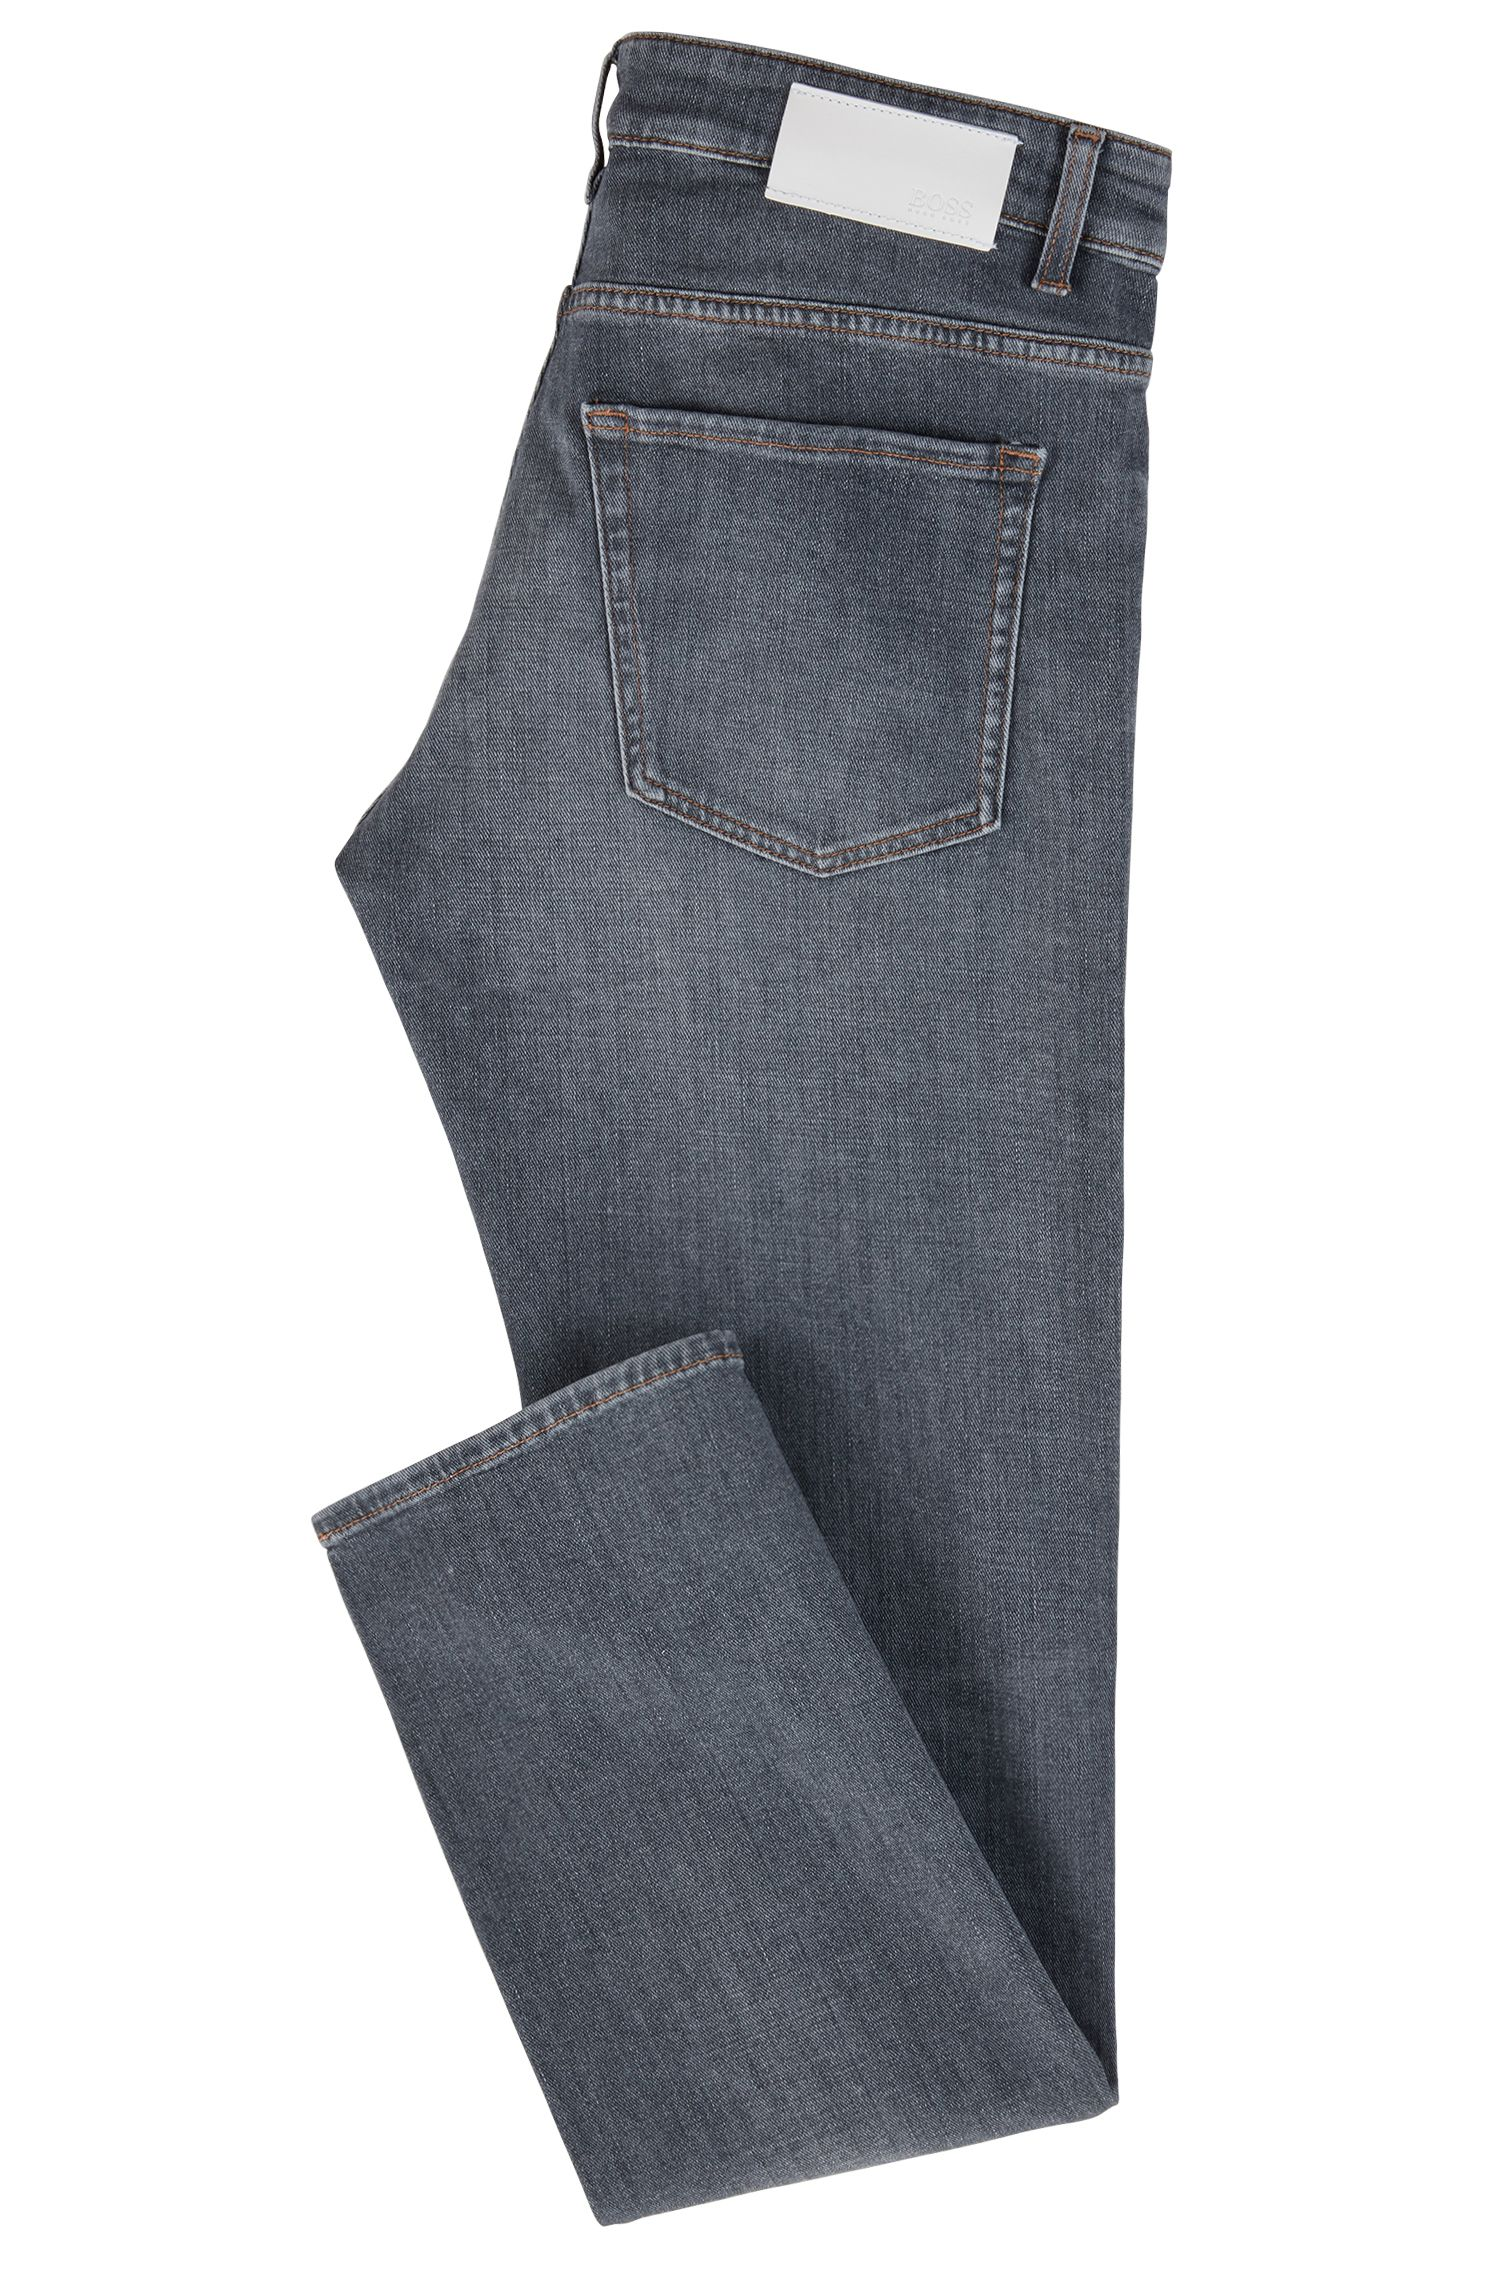 Slim-fit jeans van grijs, Italiaans stretchdenim in een linkse twill